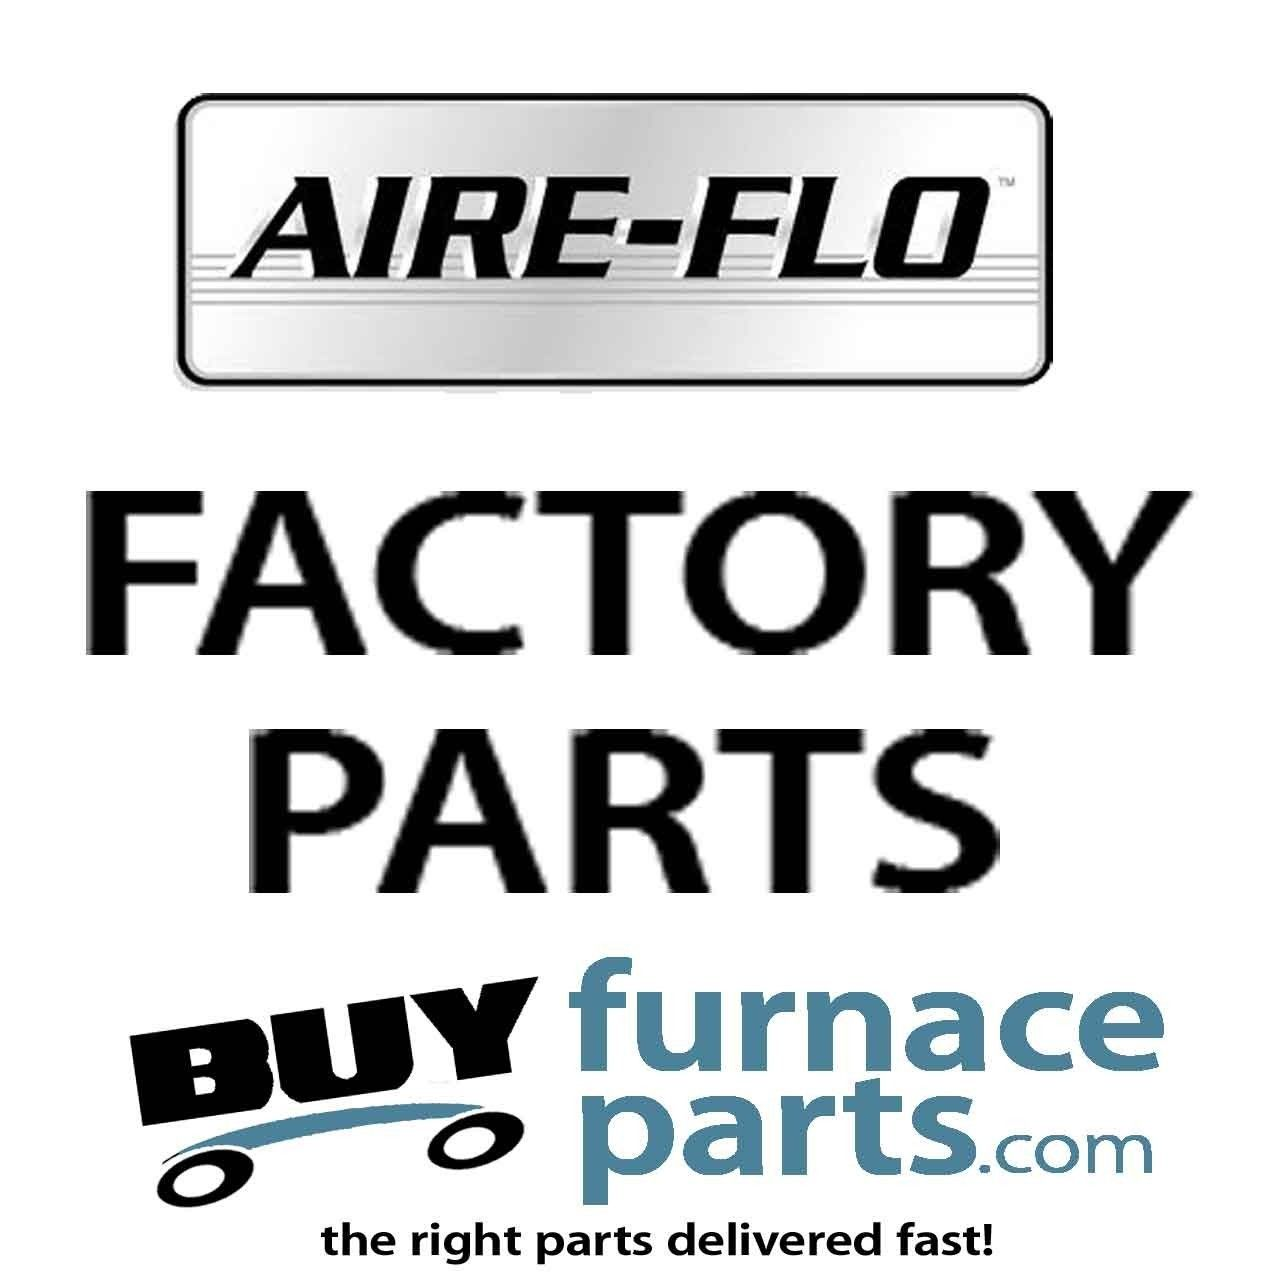 Pin By Buyfurnaceparts Com On Buyfurnaceparts Com Heat Pump